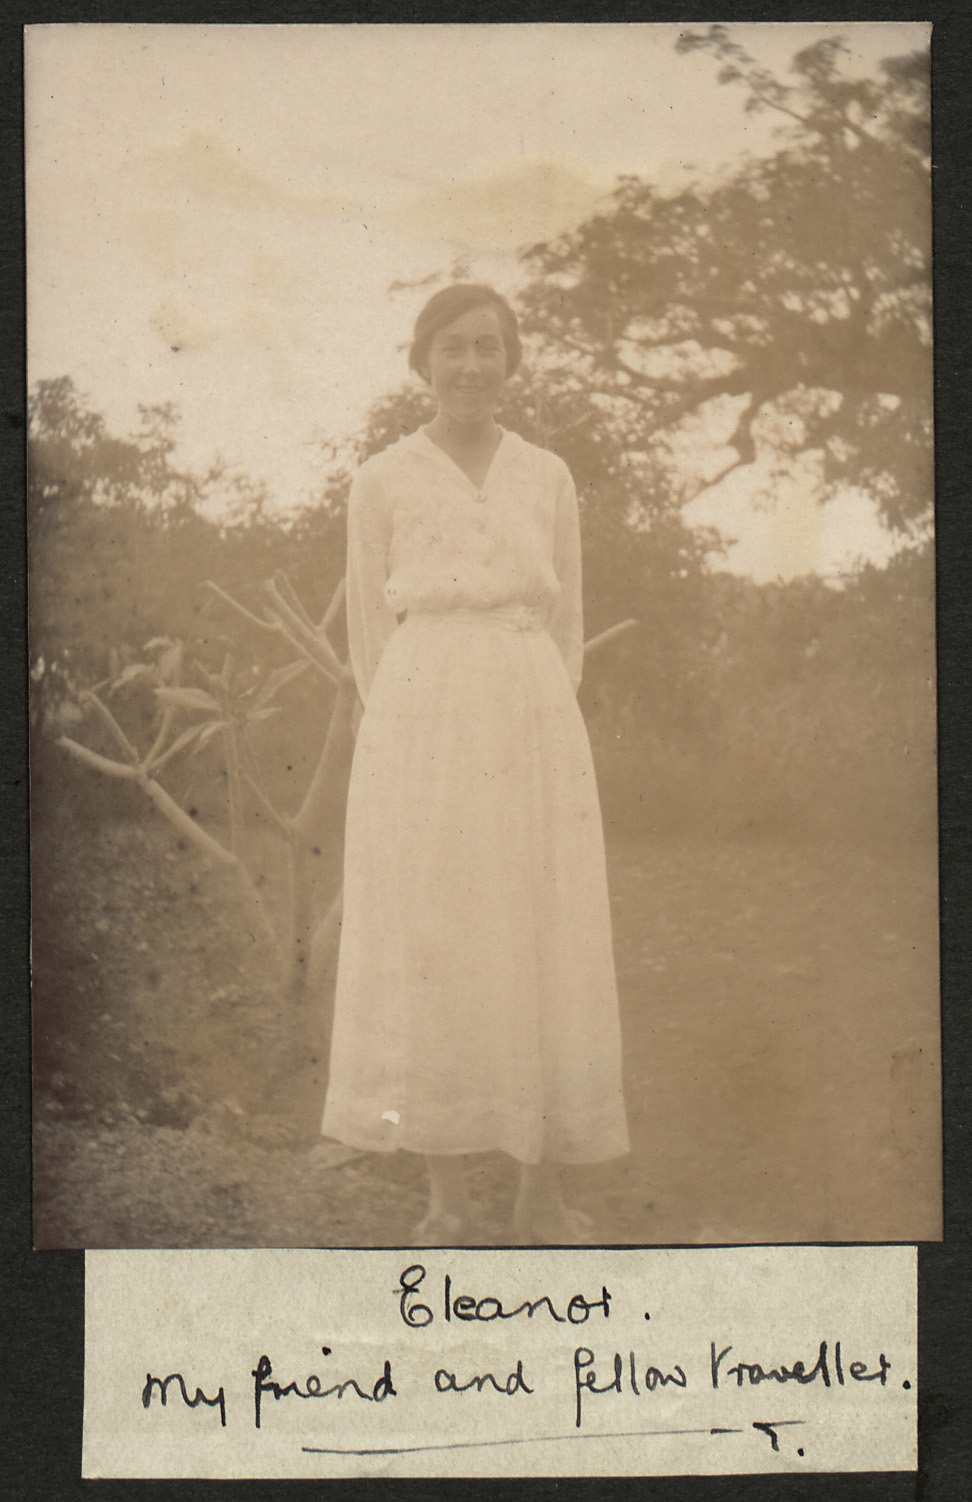 Old Photgraph of Eleanor Kemp, a woman mentioned in the diary. She is smiling, clothed in a long white dress and surrounded by trees,